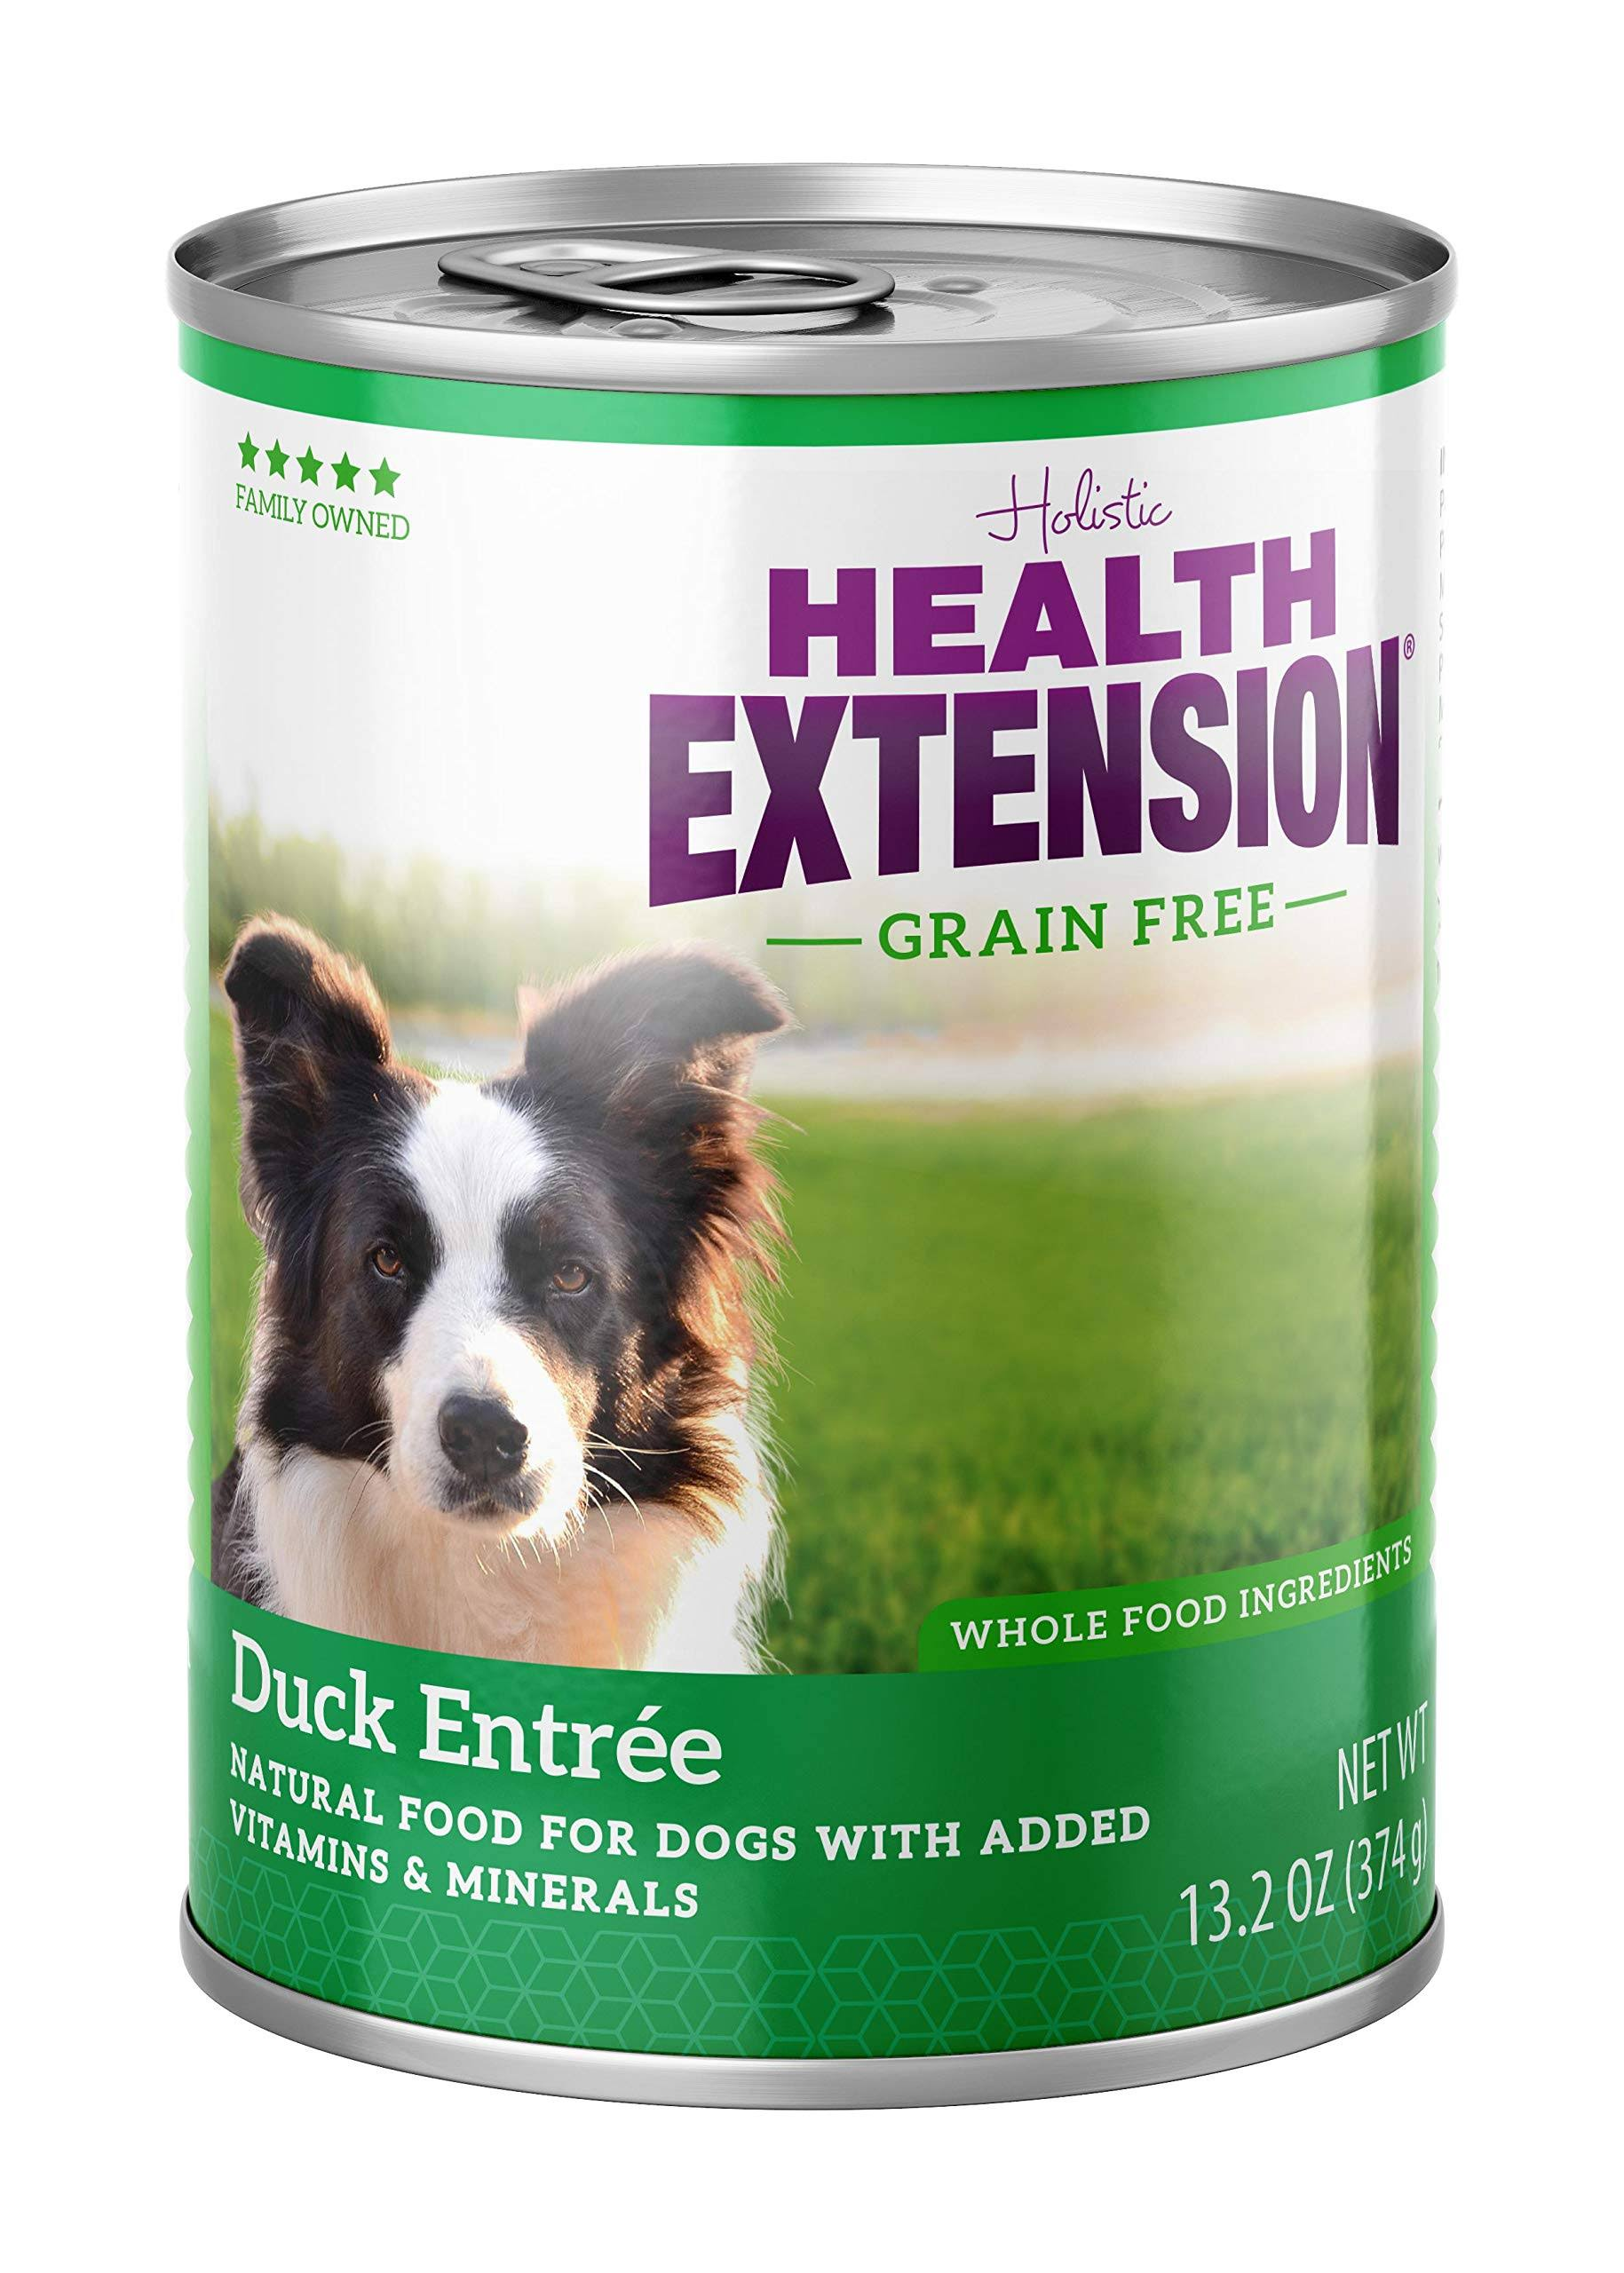 Health Extension Grain Free Canned Dog Food - Duck Entree with Sweet Potatoes